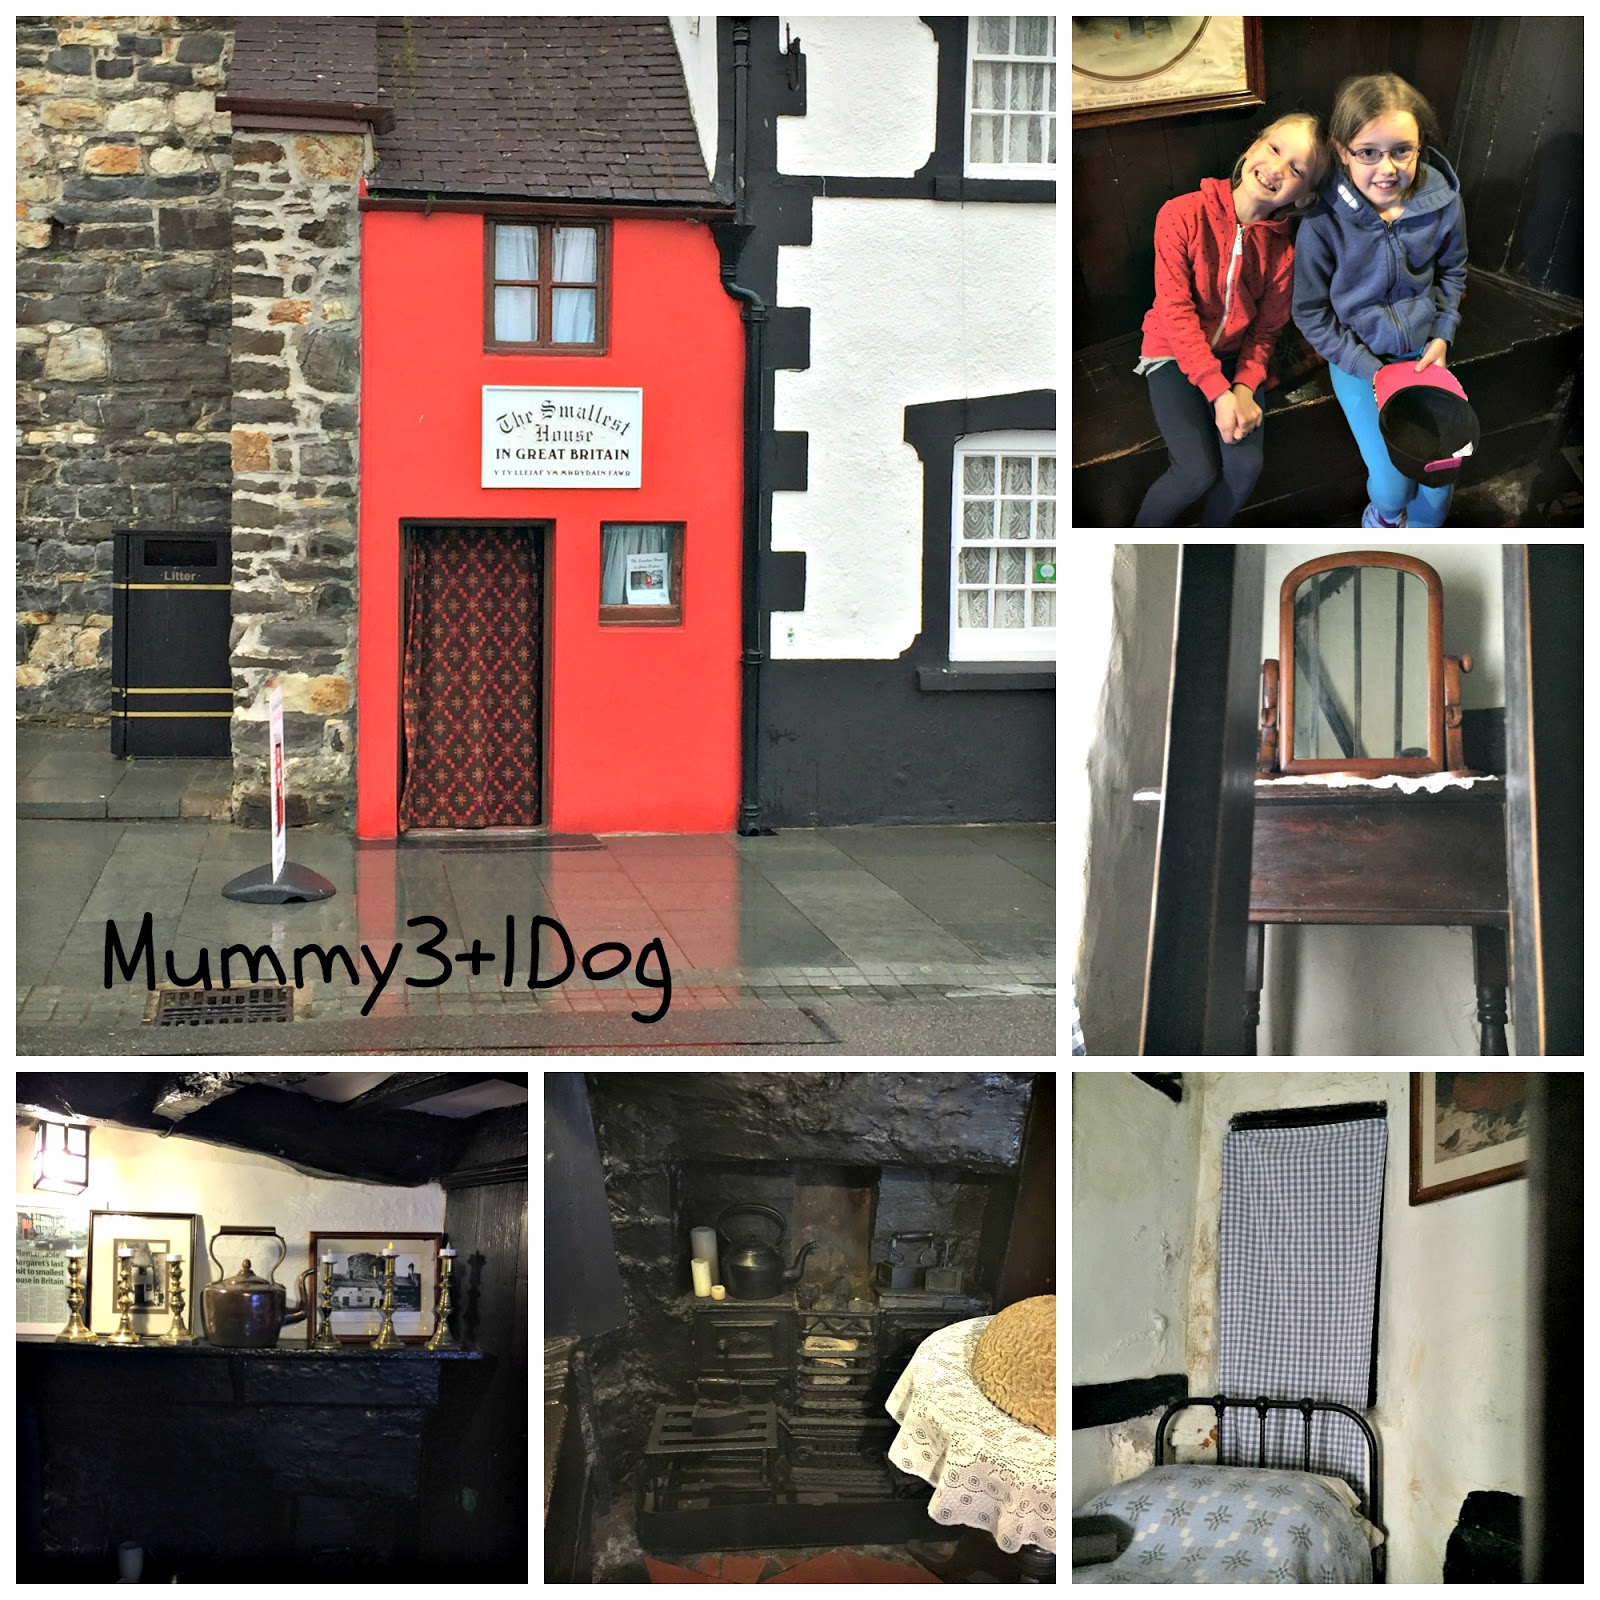 Smallest House In The World 2016 mummy3+1dog's memories : may 2016